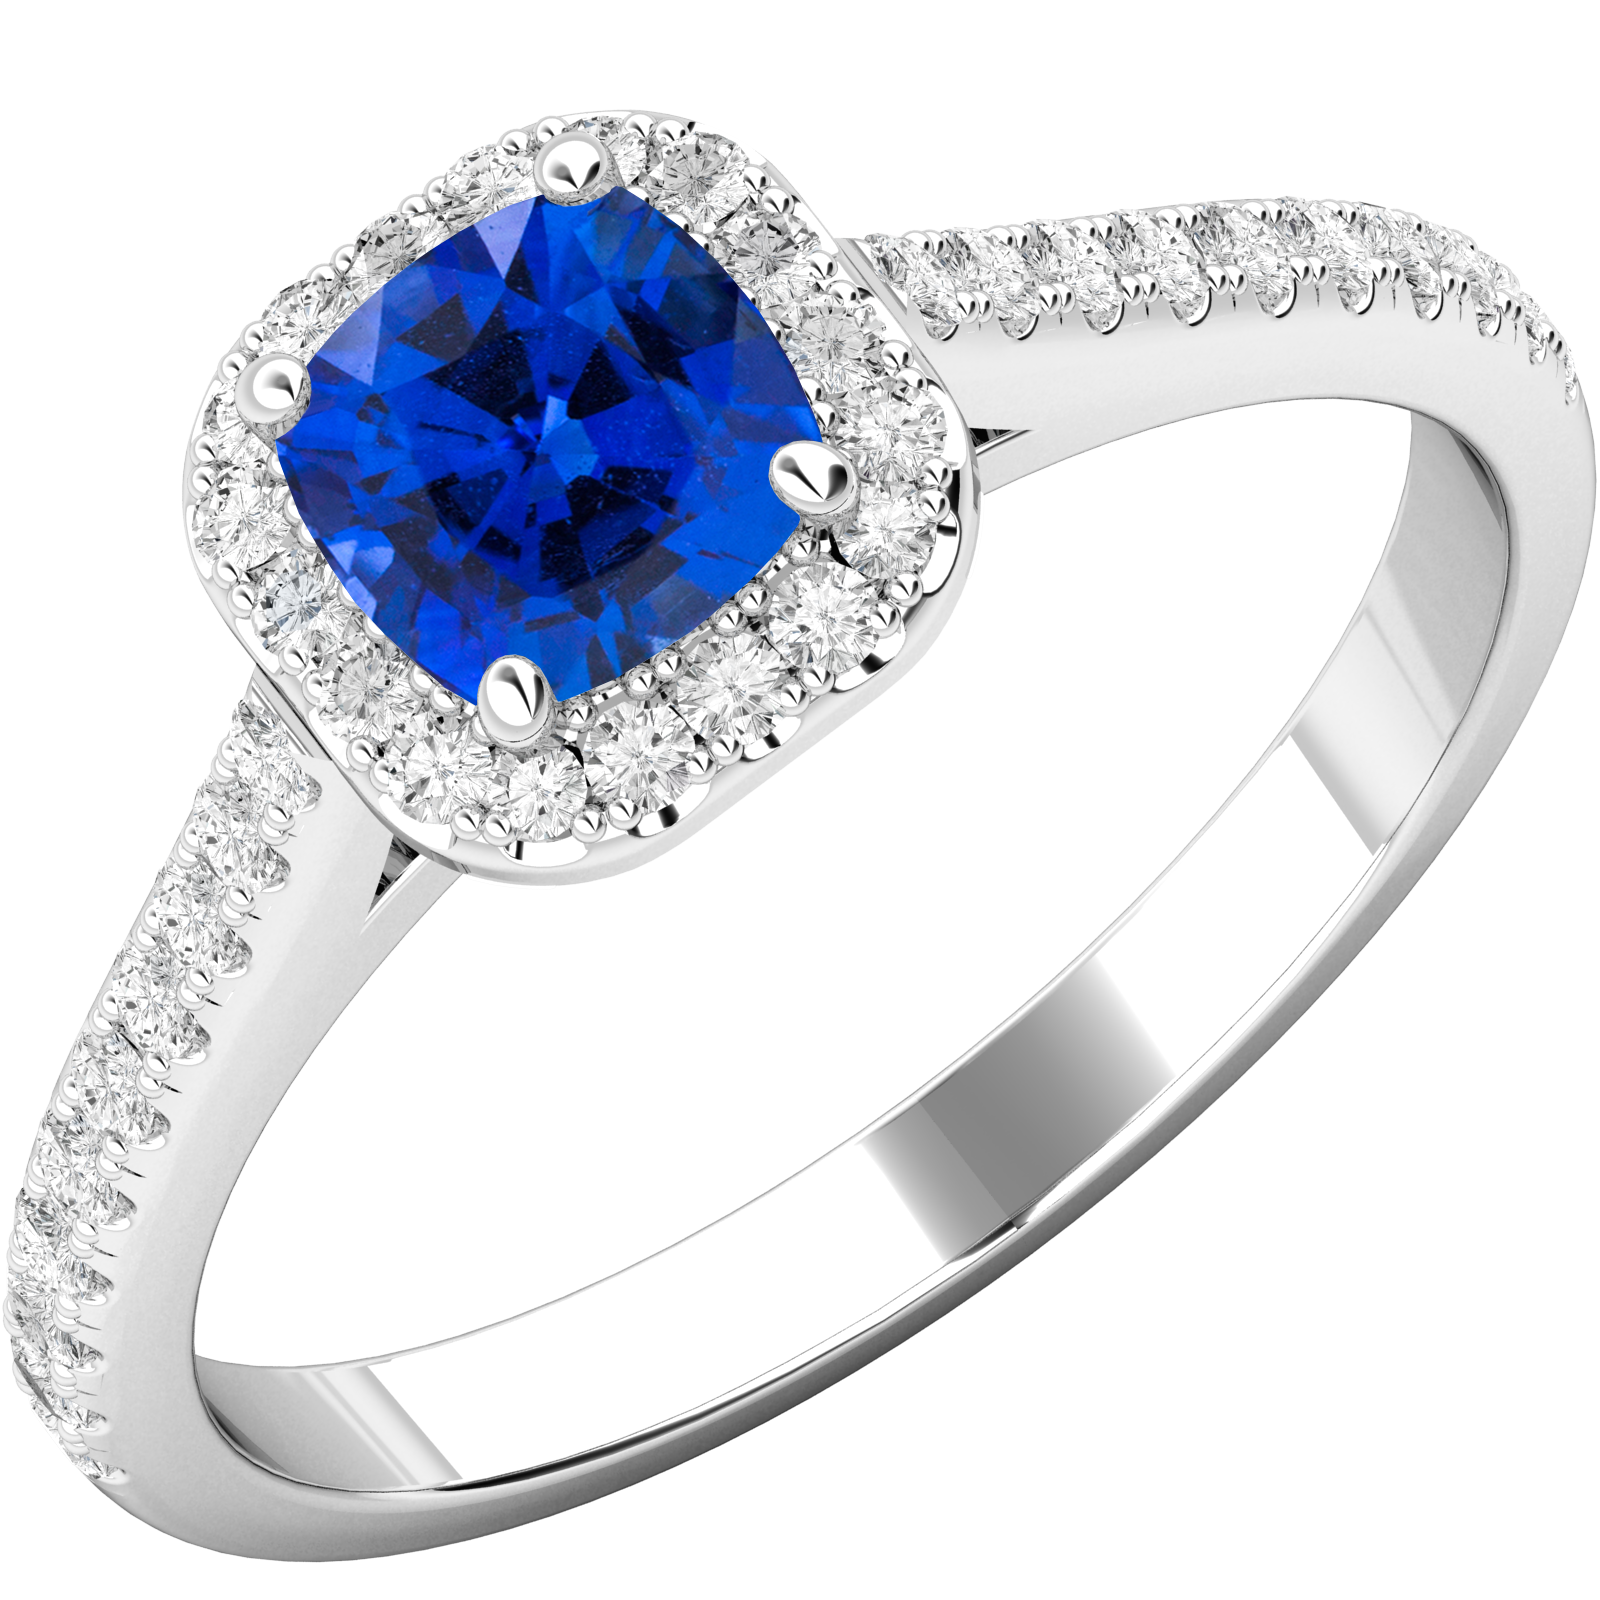 RDS591W-Inel cu Safir si Diamante Dama Aur Alb 18kt cu Safir Central Forma Cushion si Diamante Rotunde Briliant,Stil Halo-img1